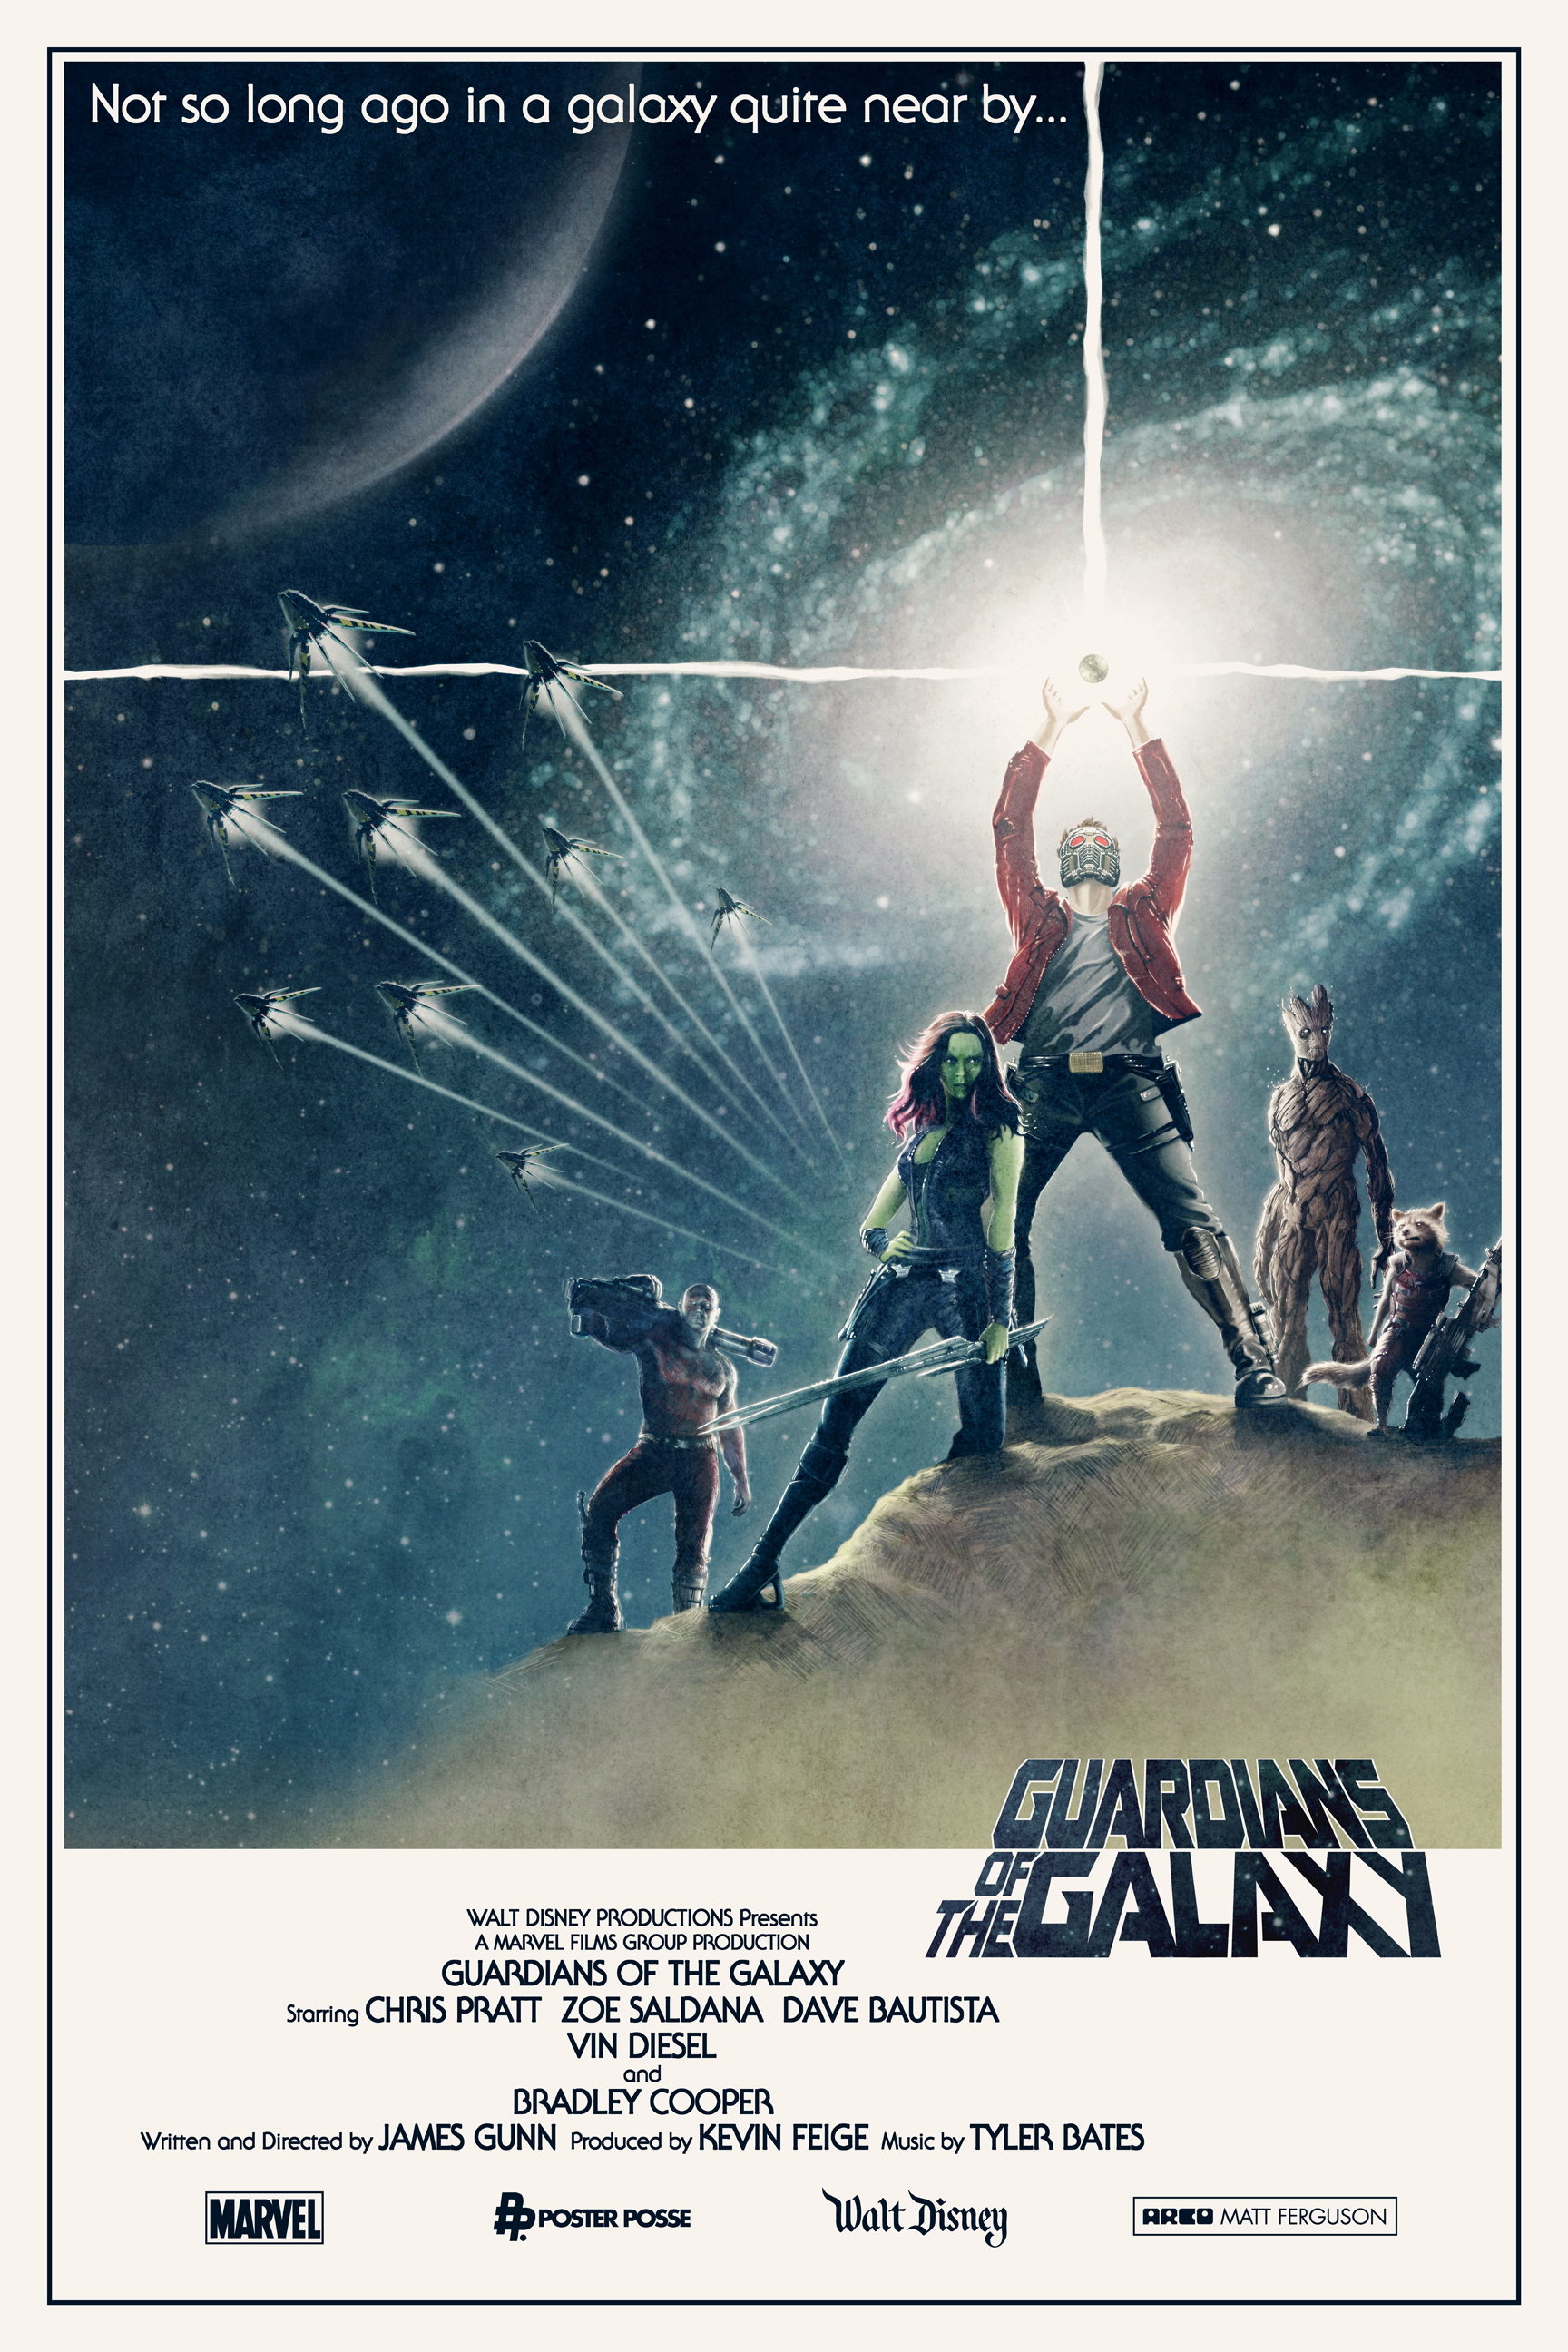 Guardians Of The Galaxy Movie Poster New TV Spot and Fan Po...